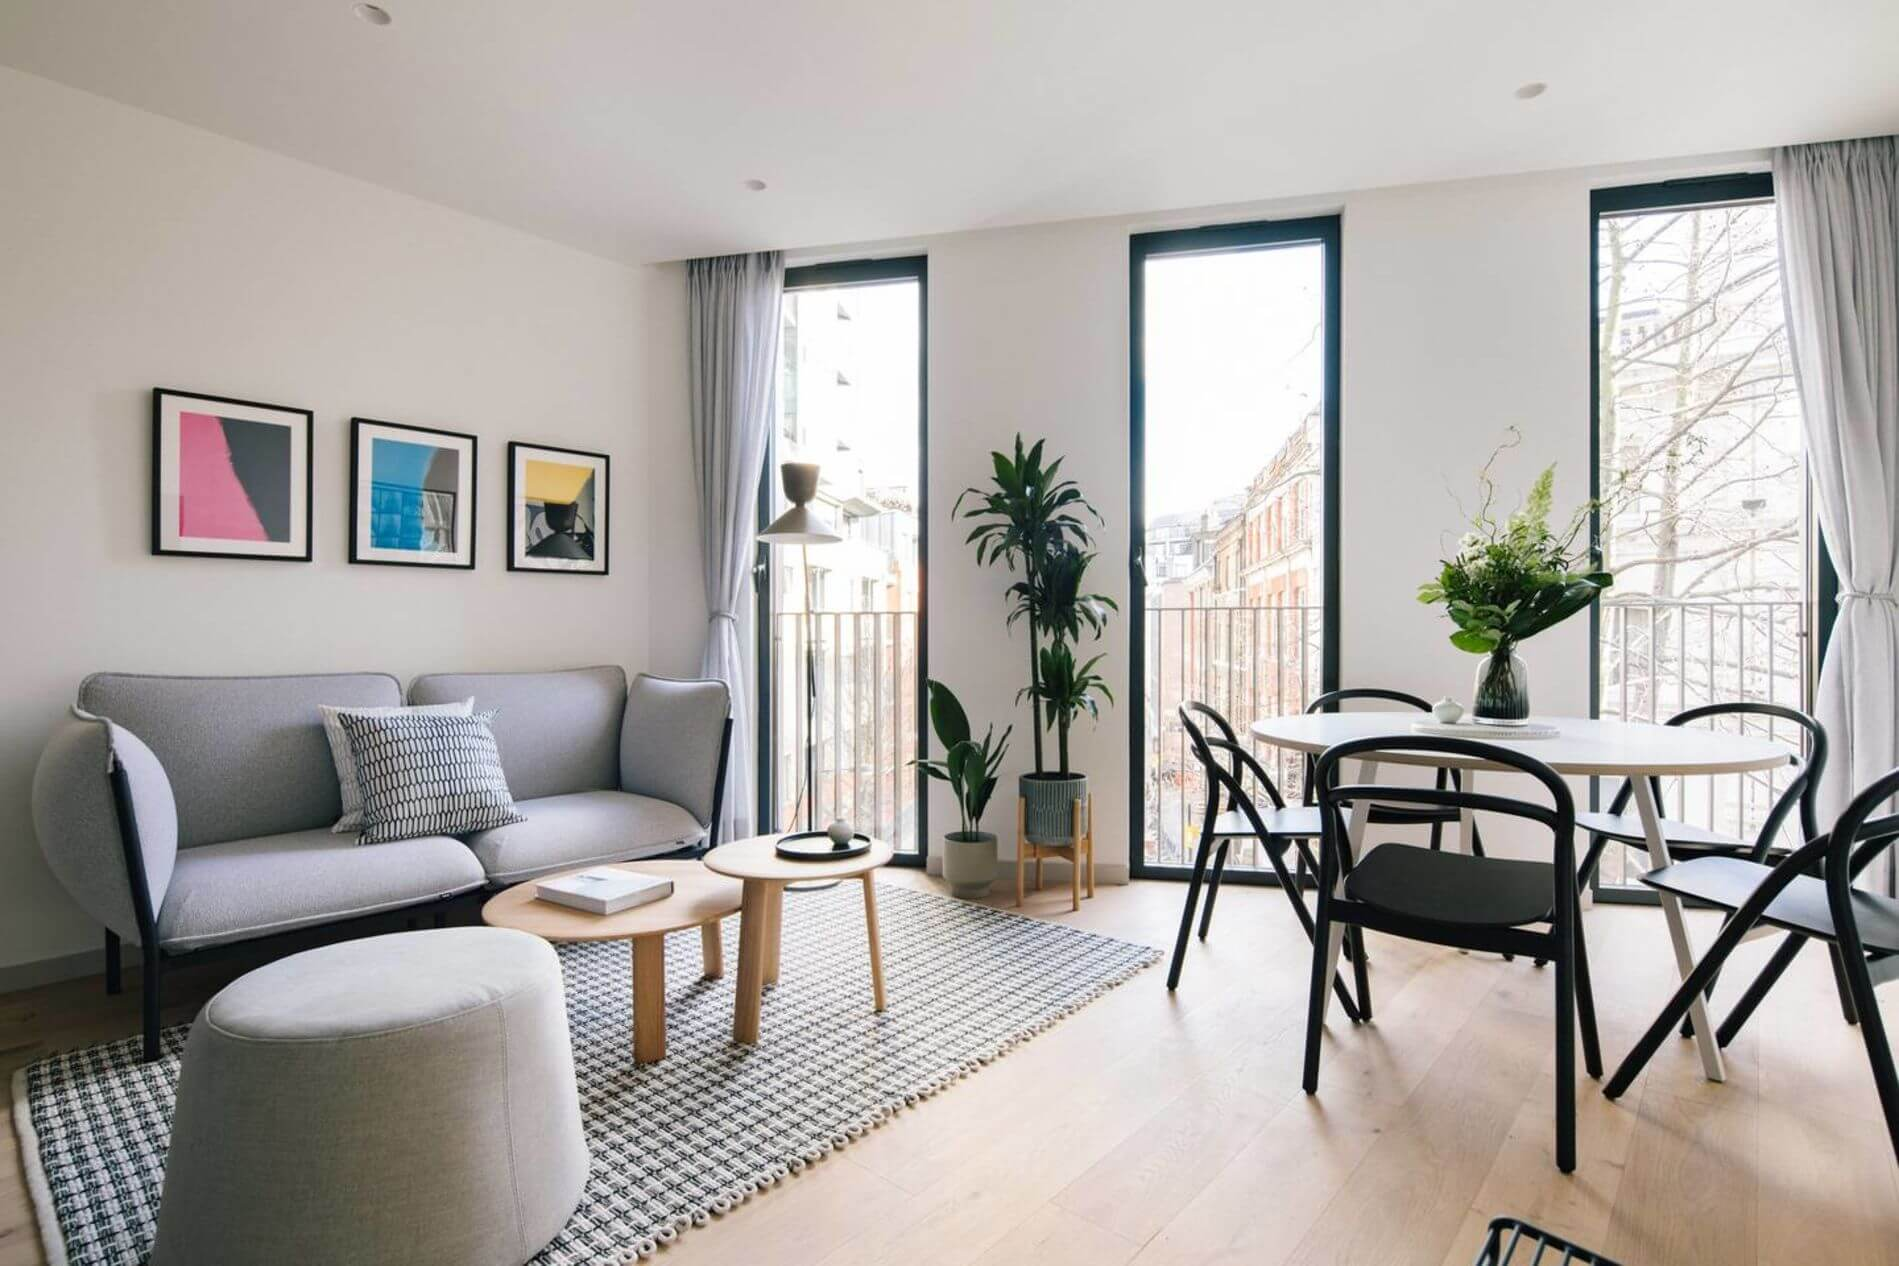 Fully furnished luxury apartment in Fitzrovia, London for short stays